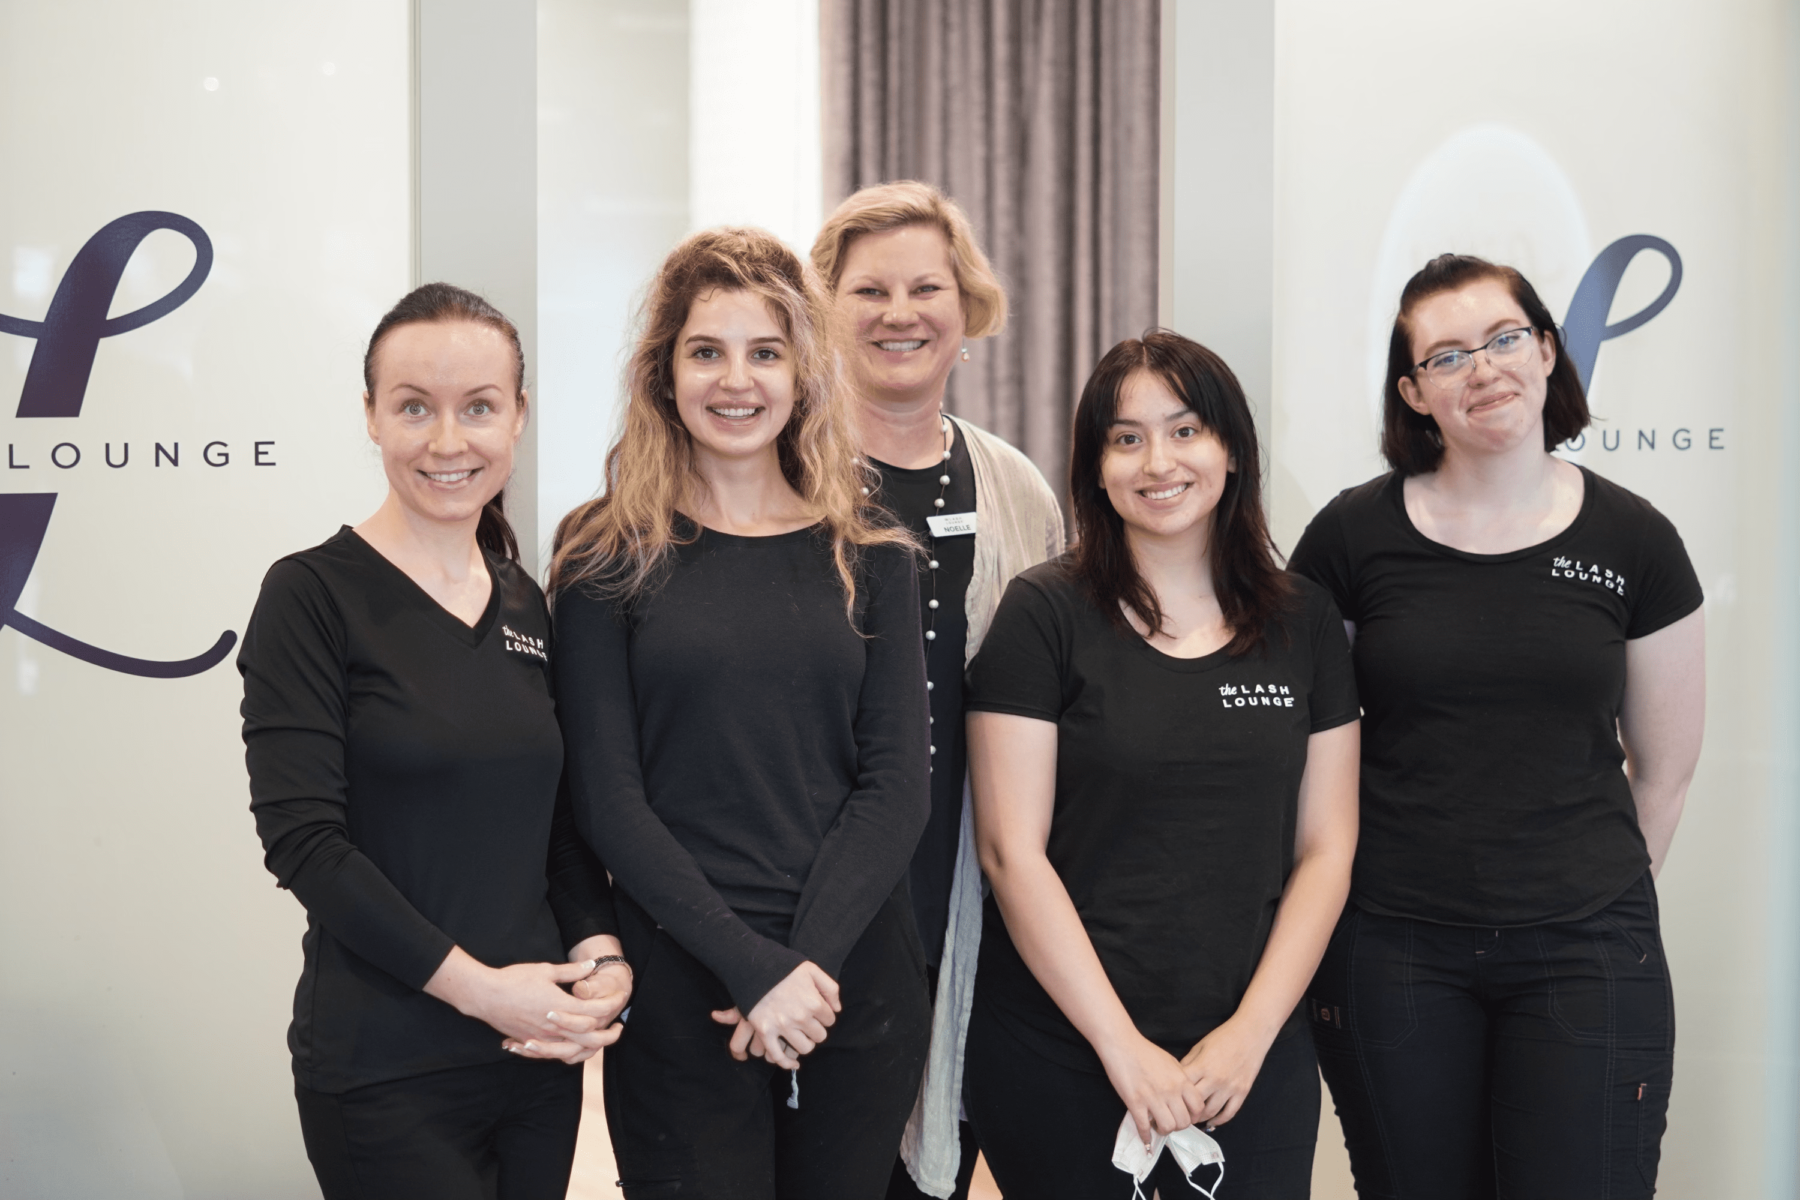 Lash stylists in uniform smiling at The Lash Lounge